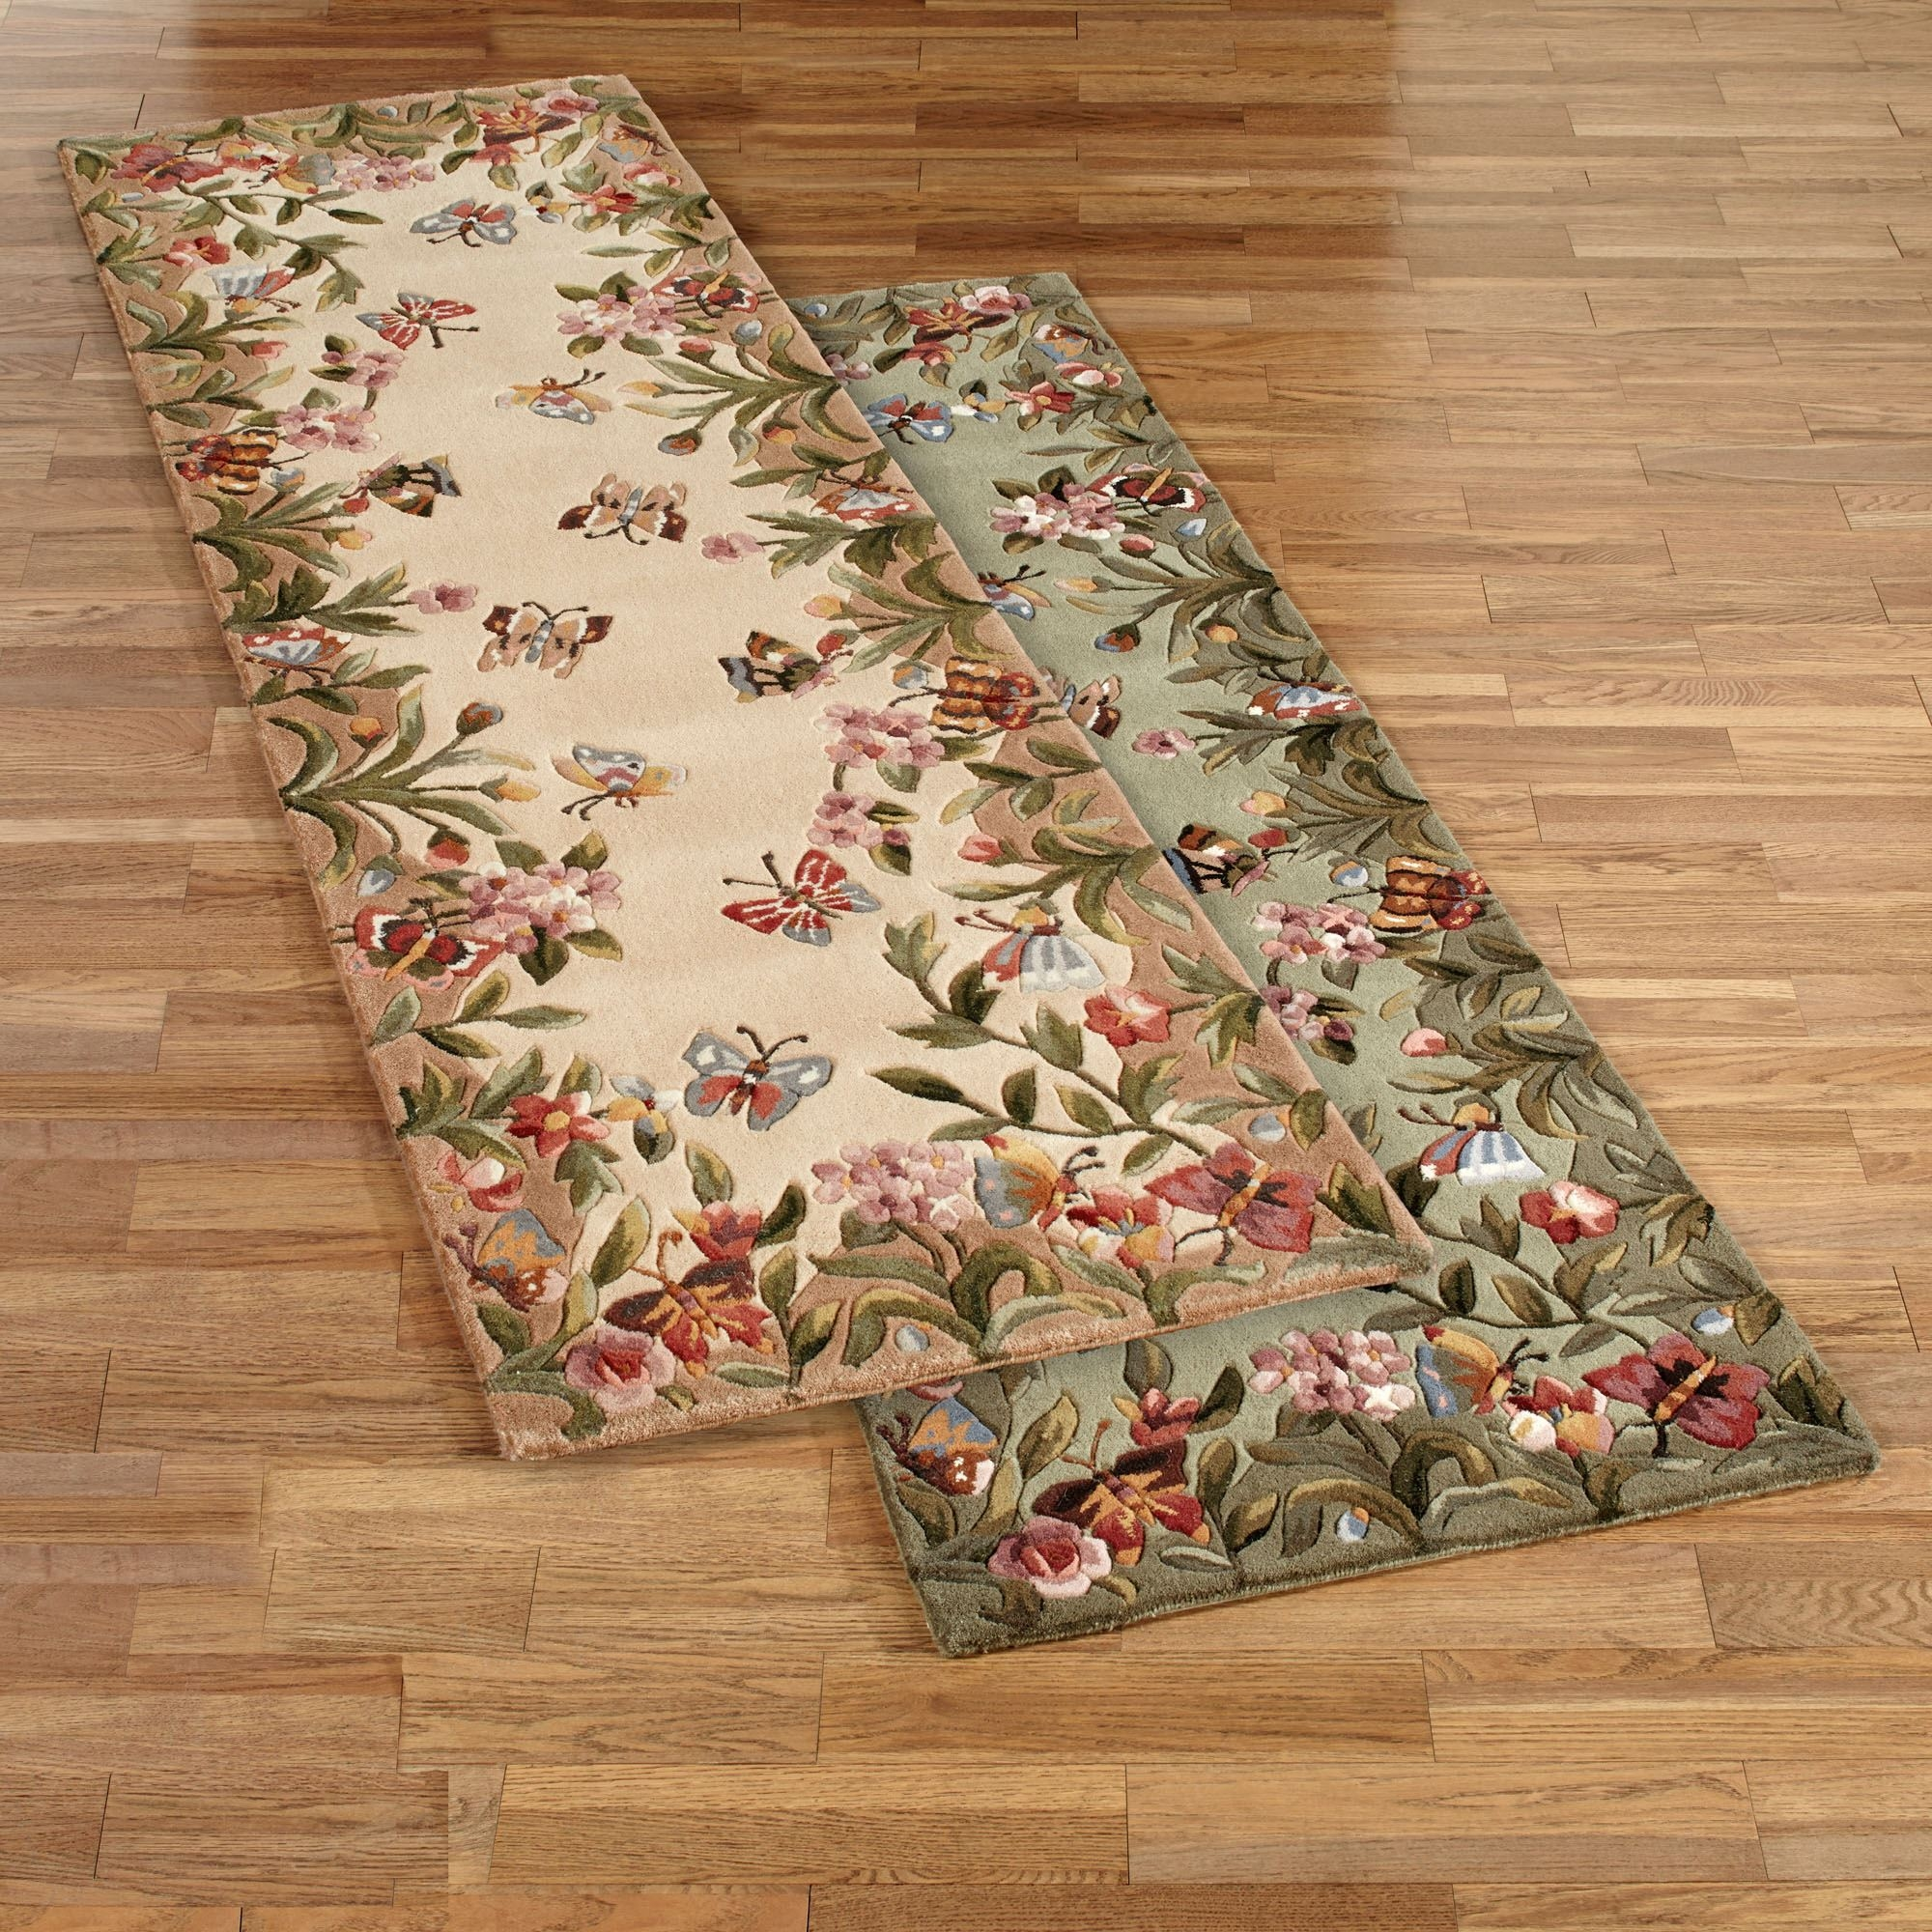 Rug Runner Area Rugs Touch Of Class Regarding Hallway Runners Floral (#17 of 20)